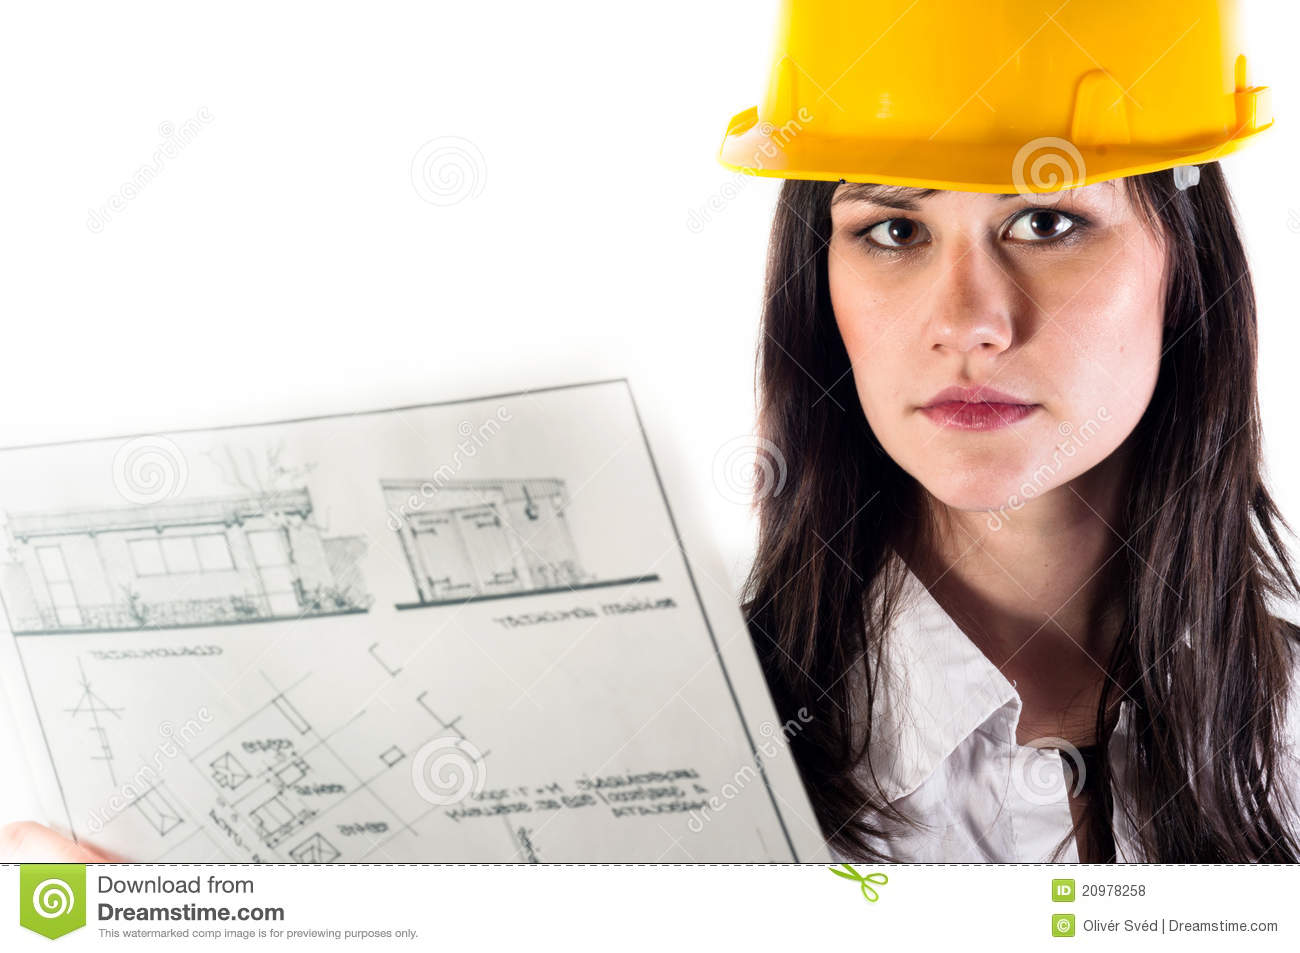 d63e6c7846c Pretty business woman in yellow helmet and her plans